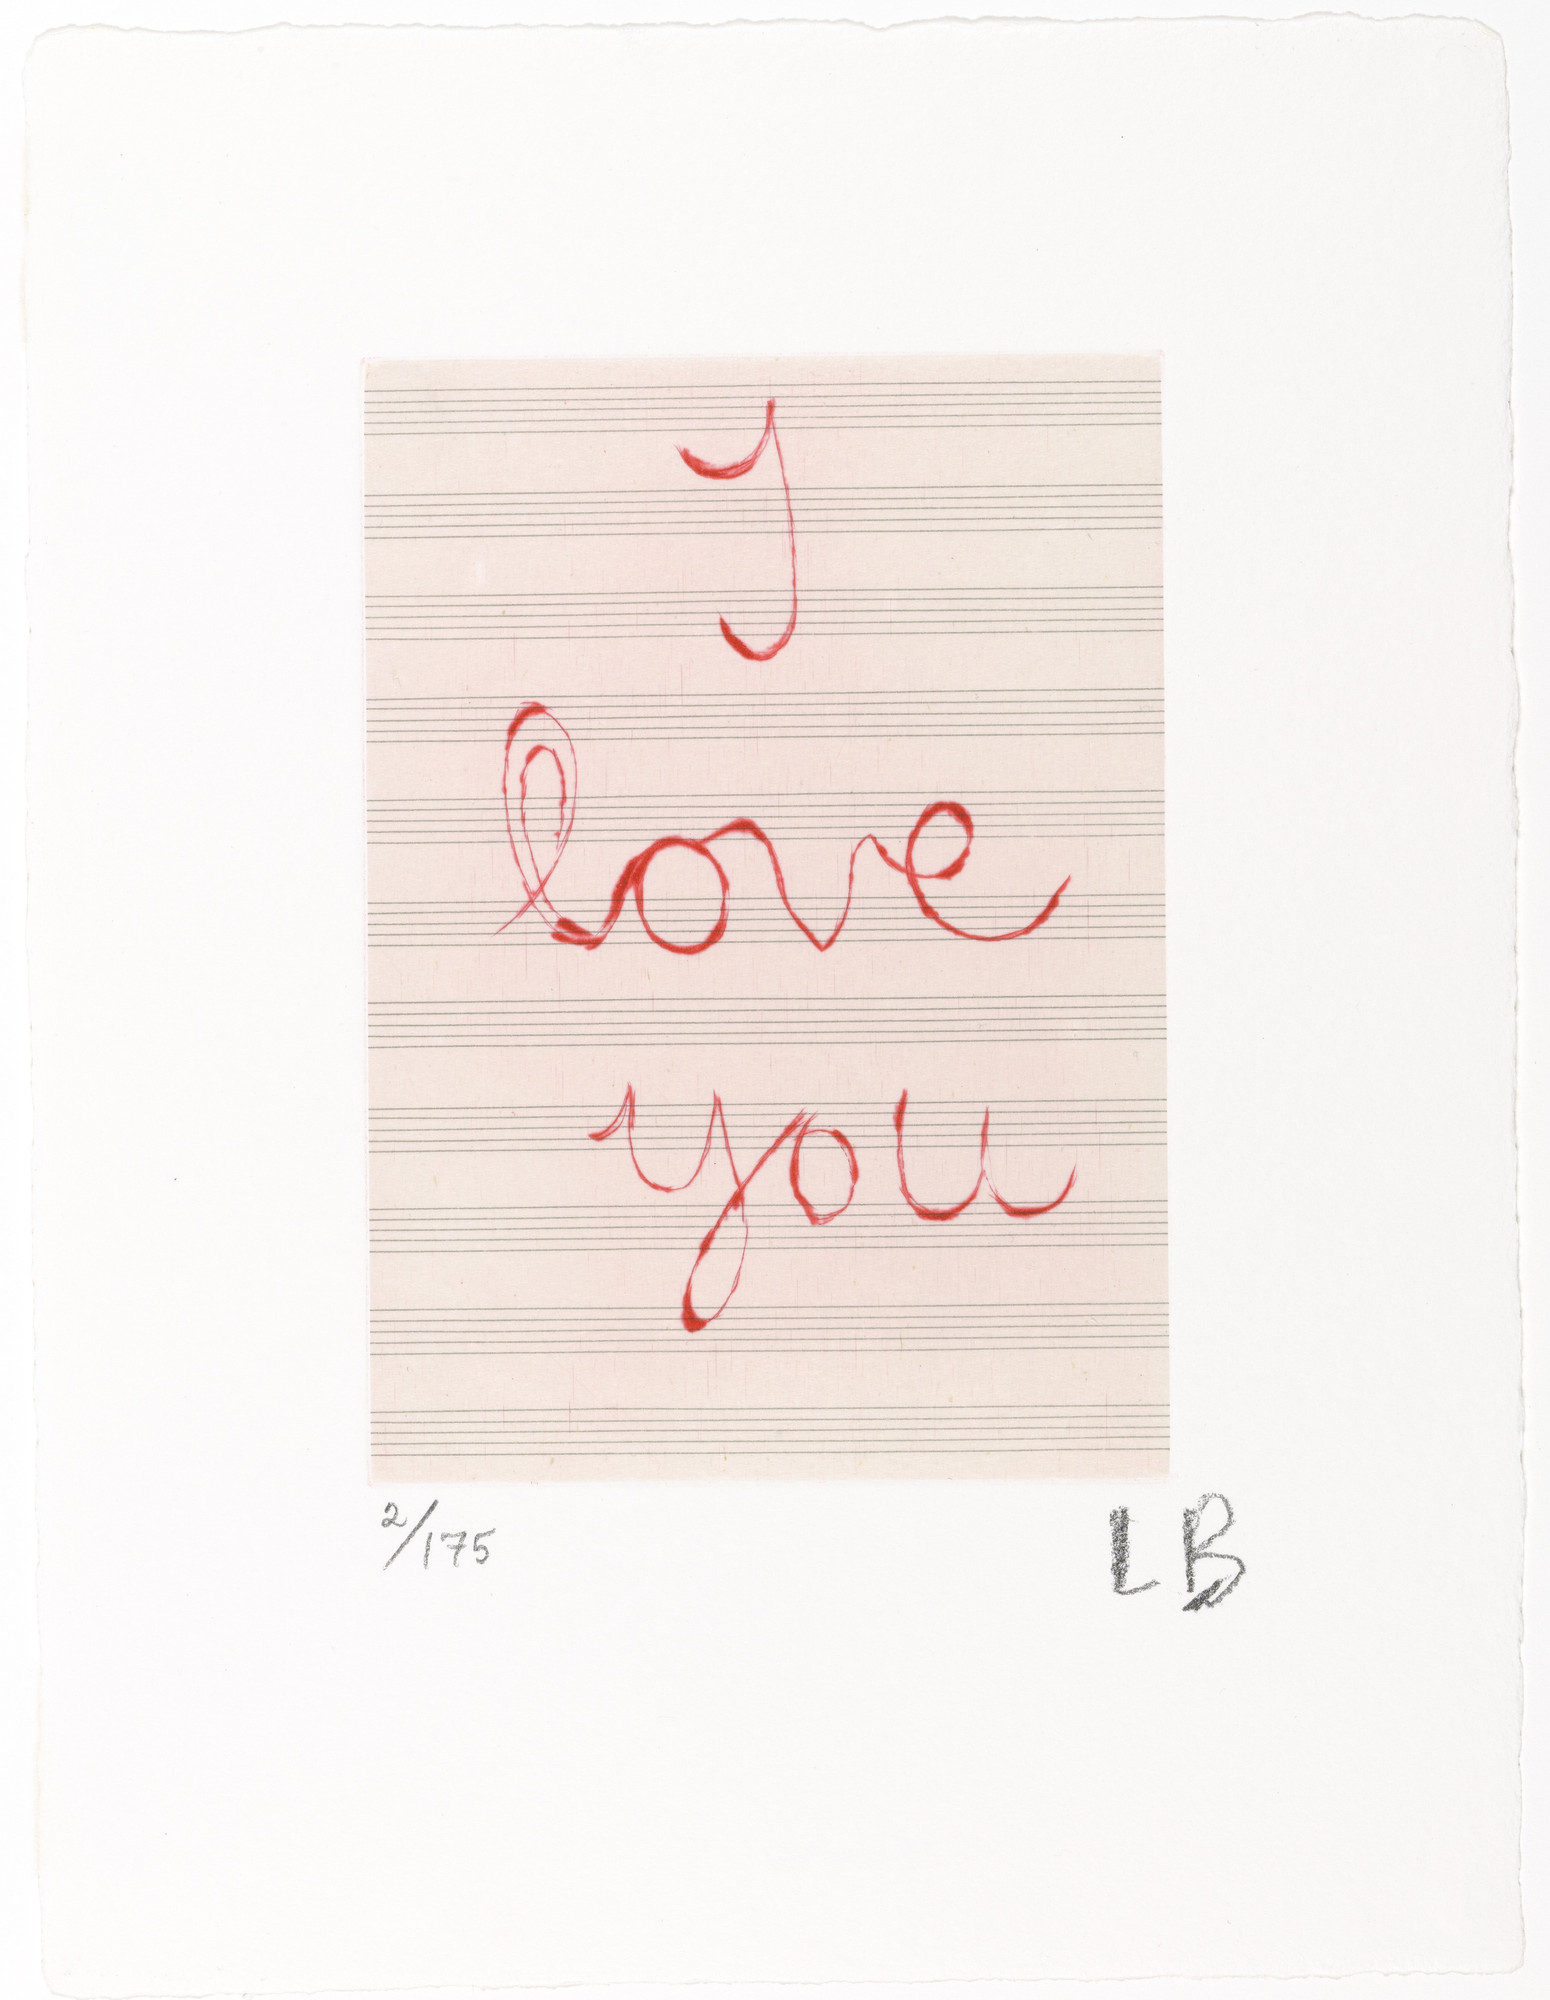 Louise Bourgeois. I Love You. 2007